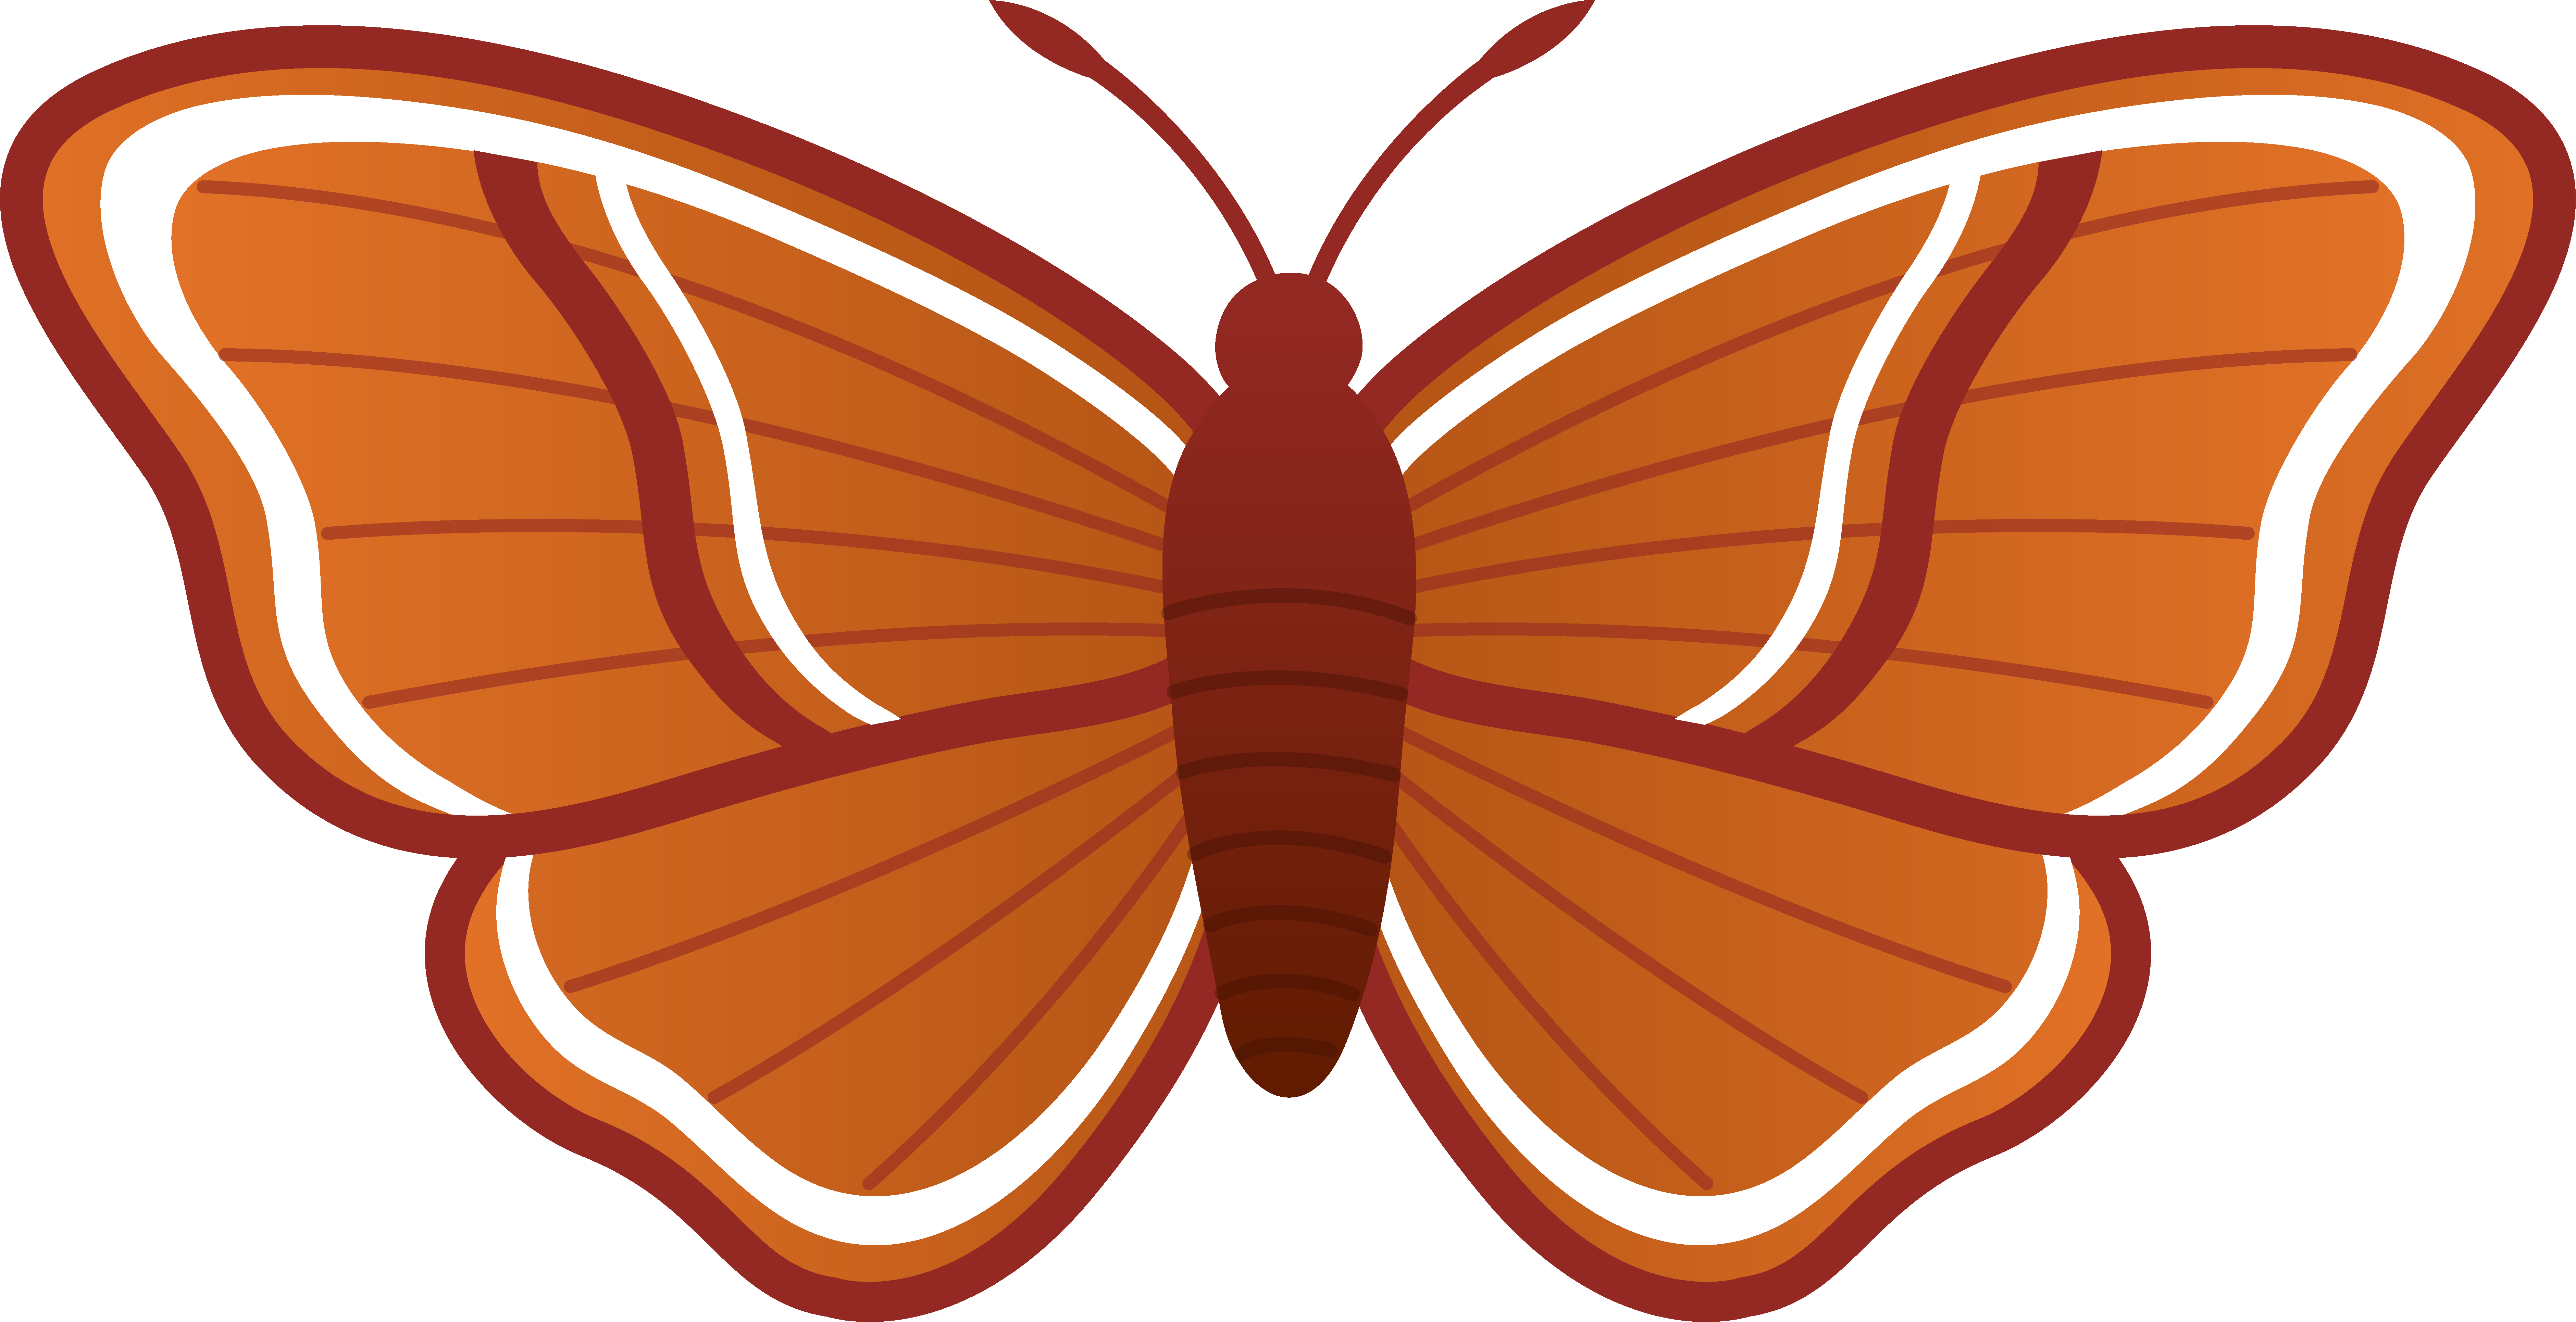 Moth clipart #3, Download drawings